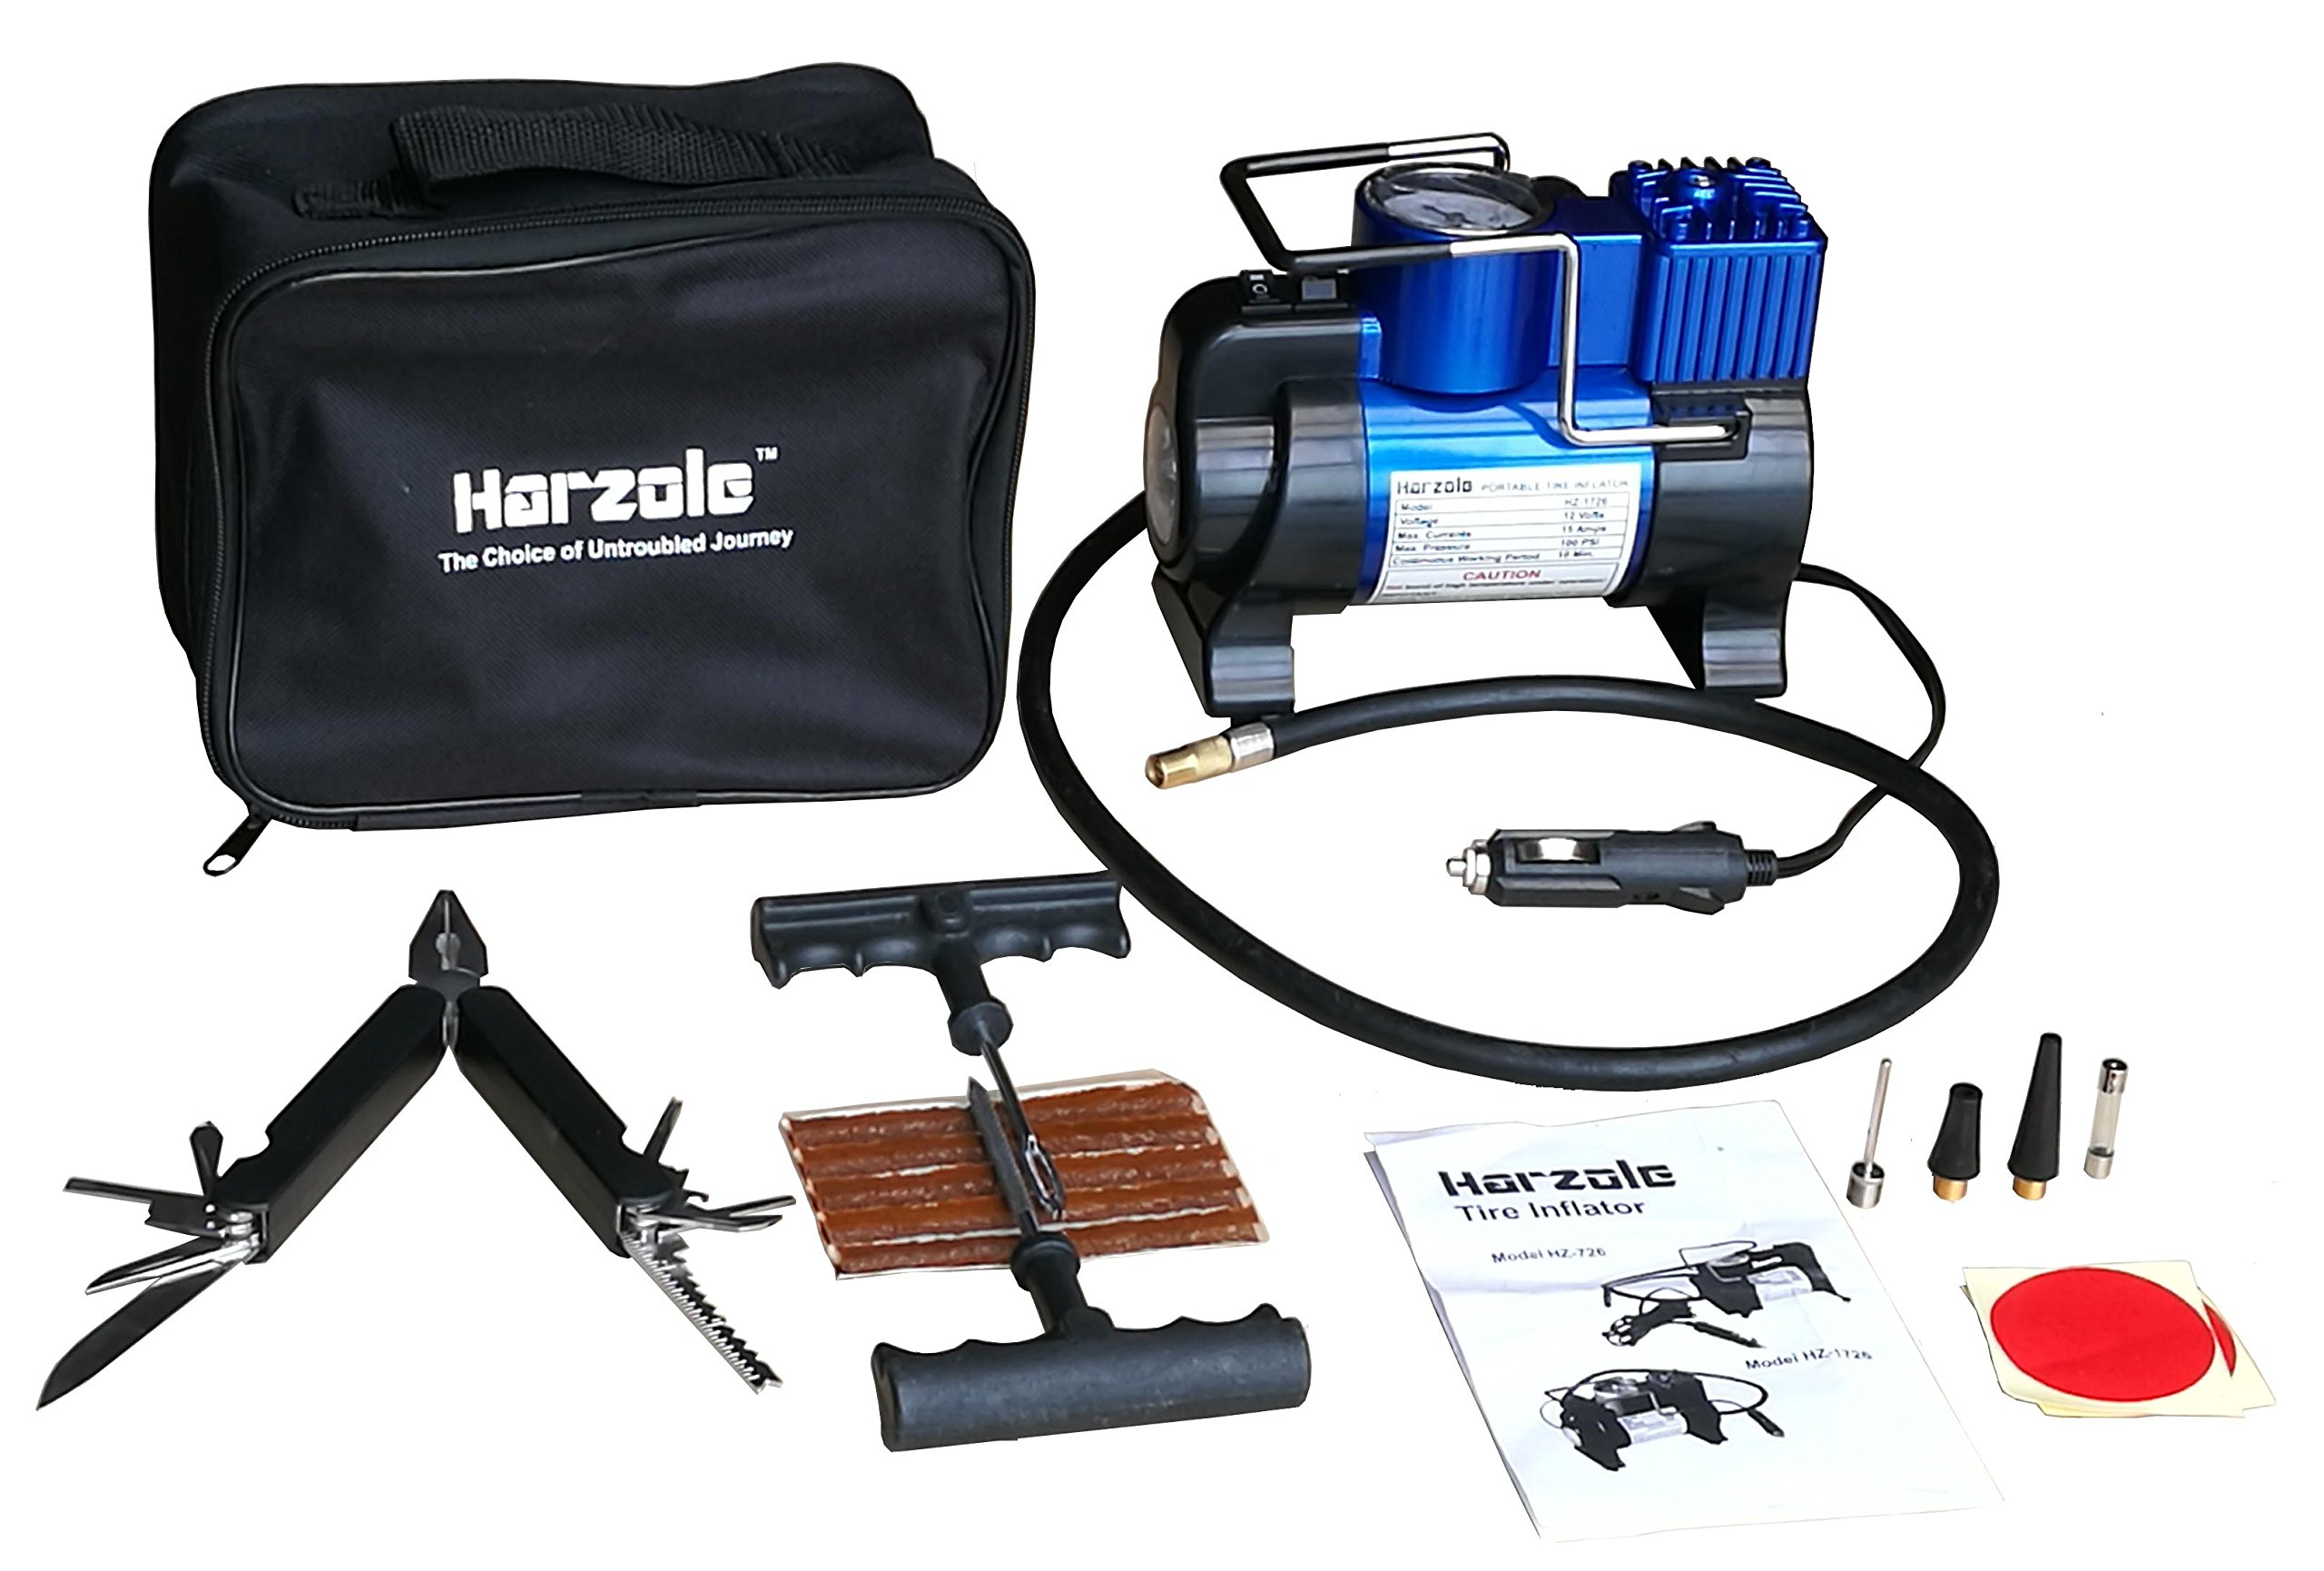 Harzole HZ-1726A DC 12V Car Air Pump, Tire Inflator, Portable Air Compressor Kit with LED Lighter HZ-1726, with tire Repair kit HZ-420A